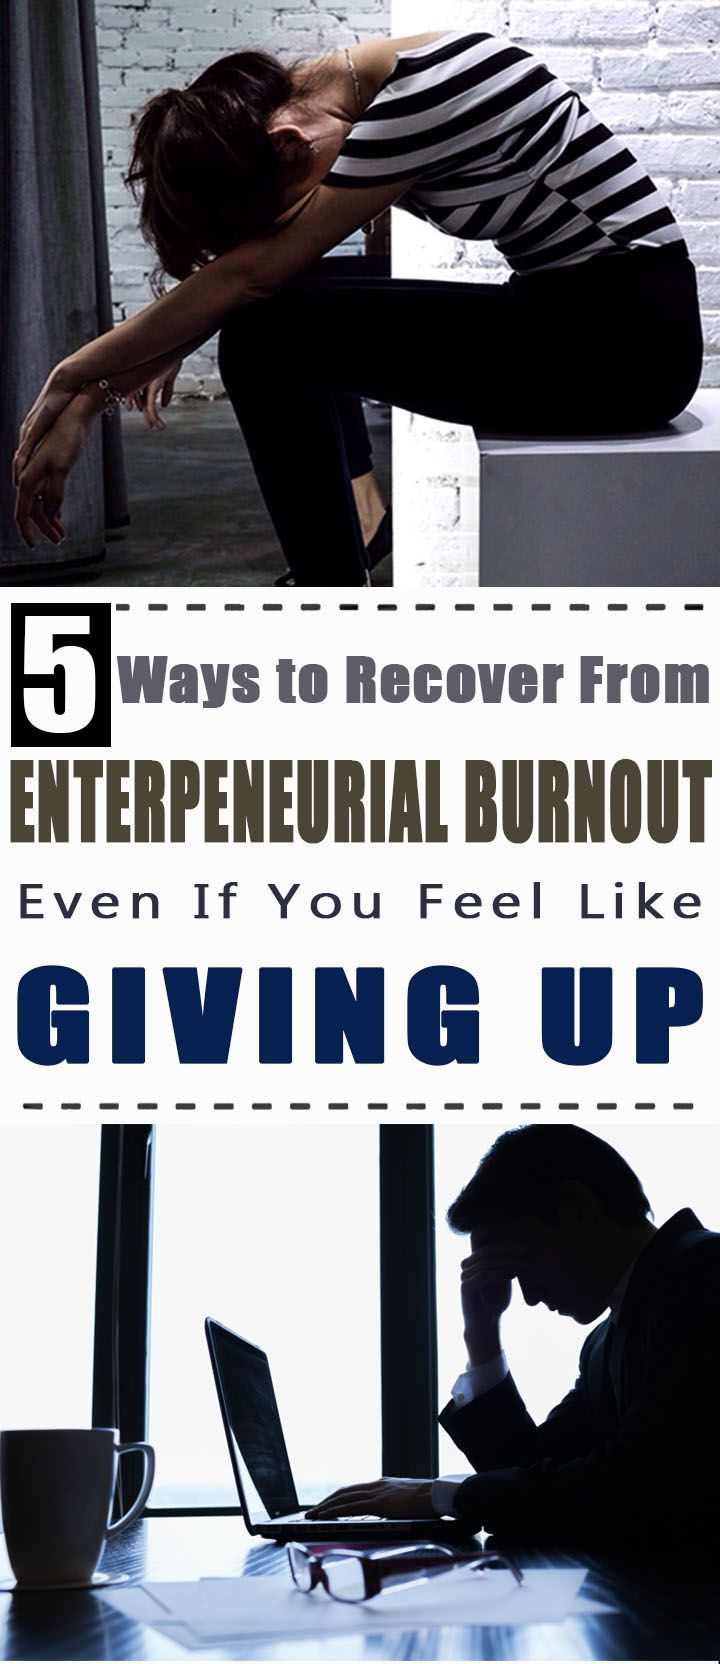 5 Ways to Recover From Entrepreneurial Burnout Even If You Feel Like Giving Up | Healthy Society  entrepreneur quotes | entrepreneur | entrepreneur inspiration | entrepreneurship | entrepreneur ideas | Melanie Duncan | Sasha Holloway | Entrepreneur | Entrepreneurship |